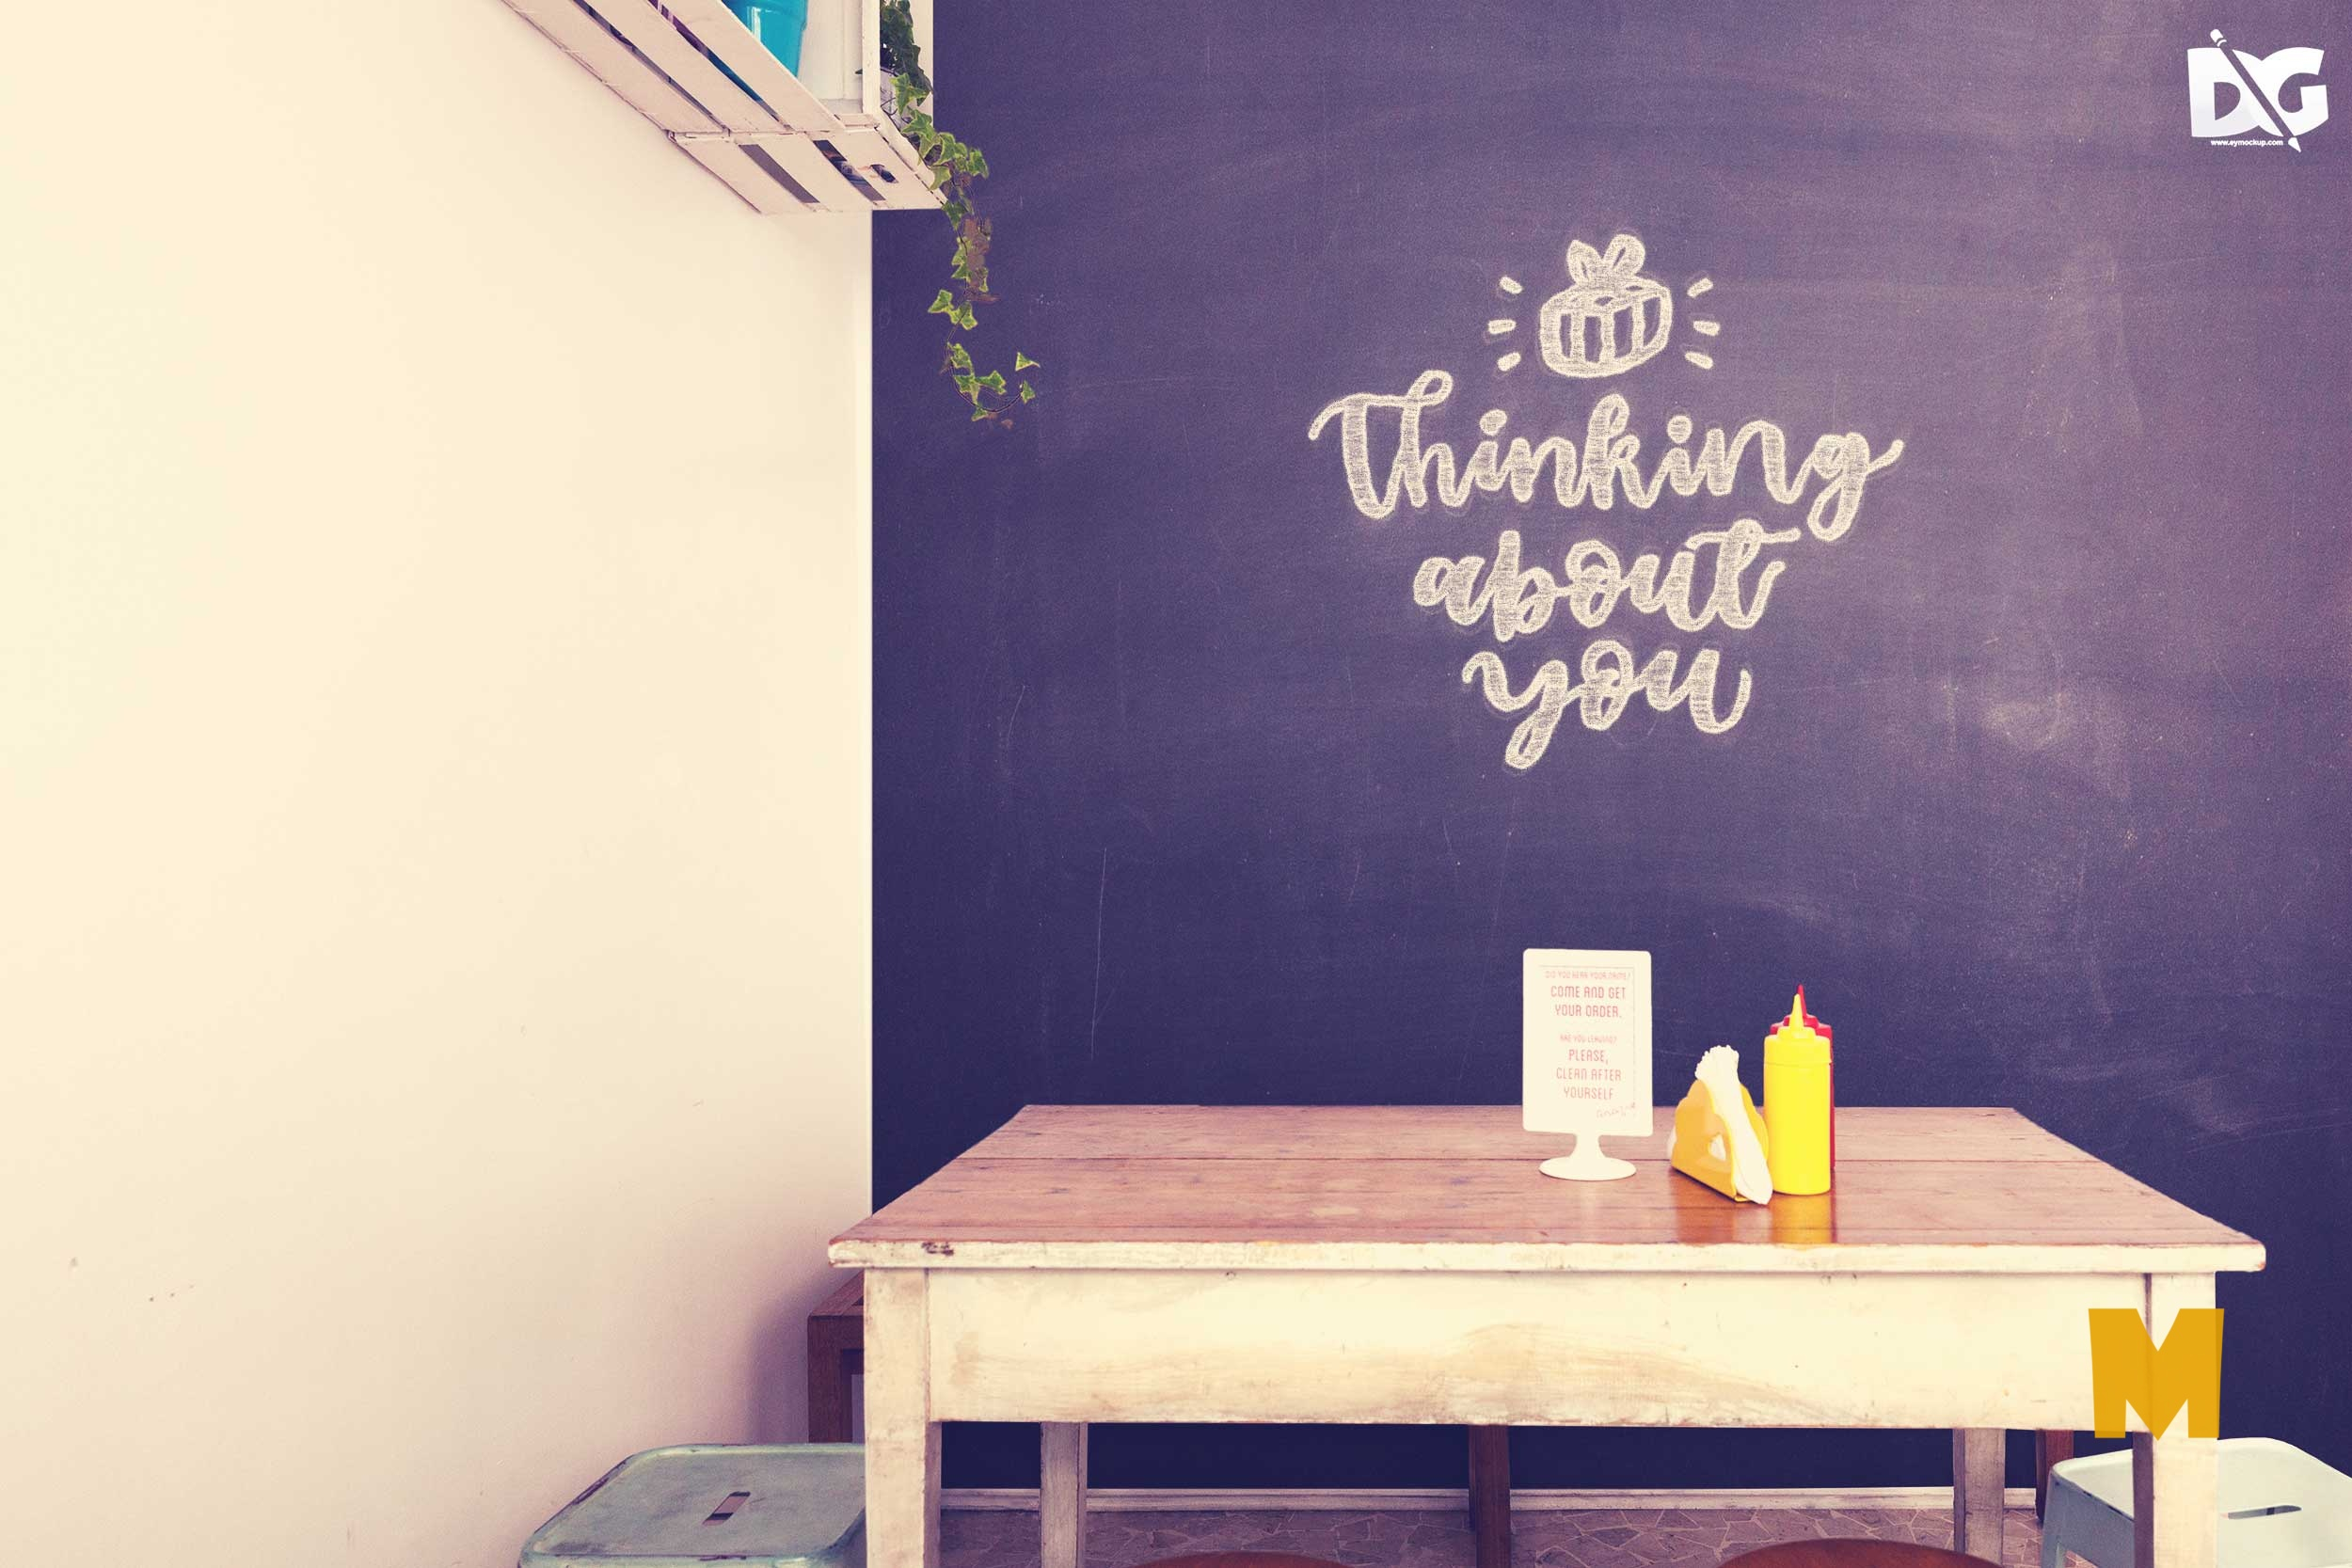 Free Mock-up Room Chalkboard PSD